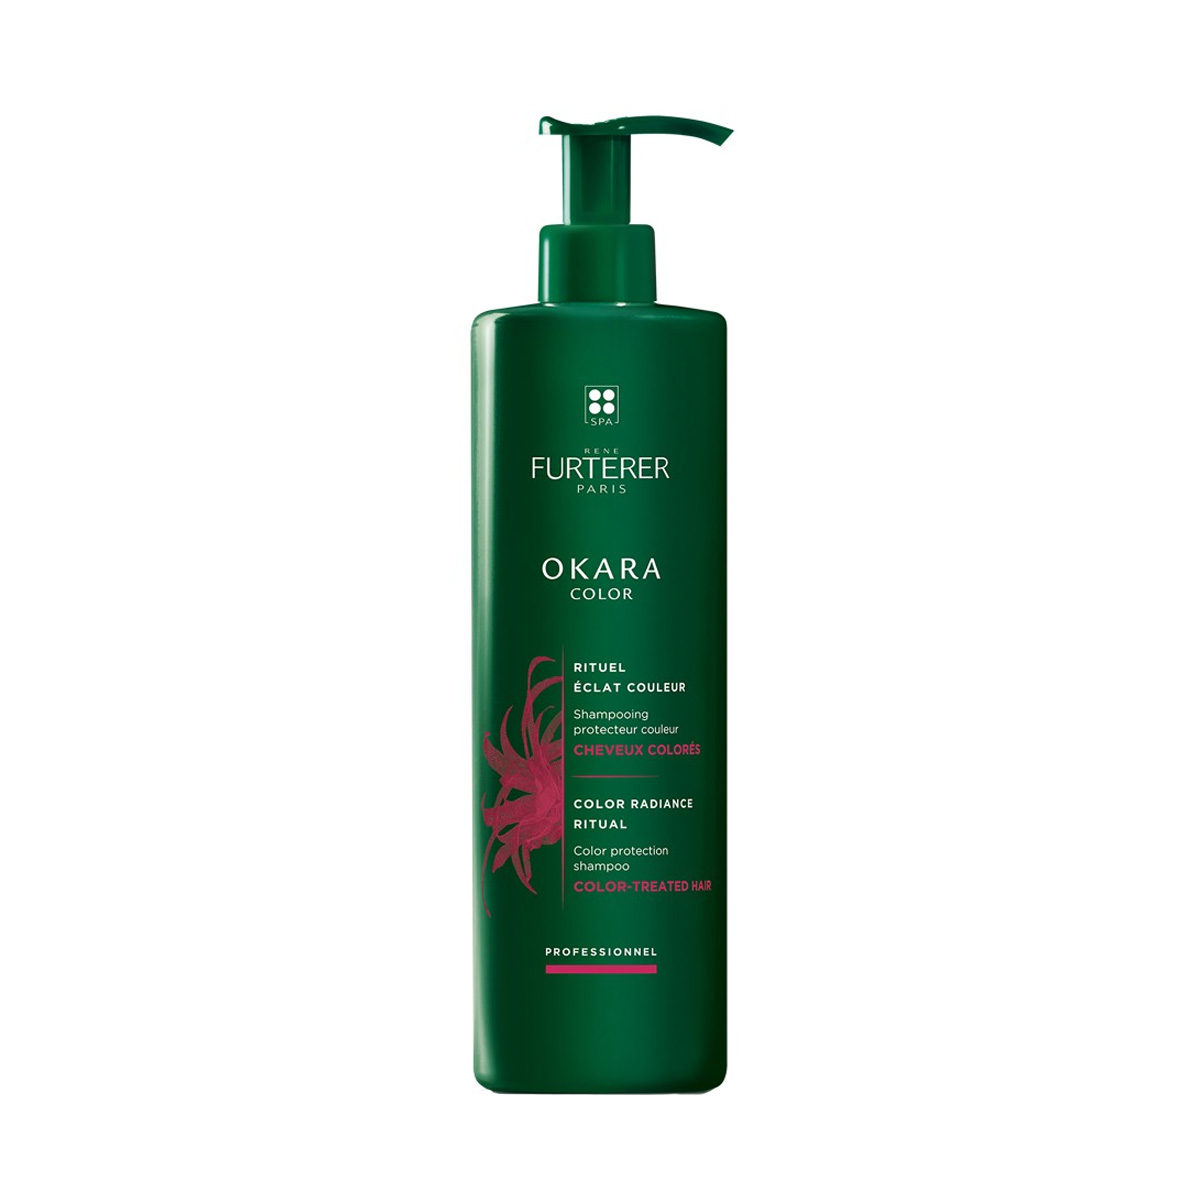 Shampooing Protecteur Couleur Okara Color René Furterer 600ml